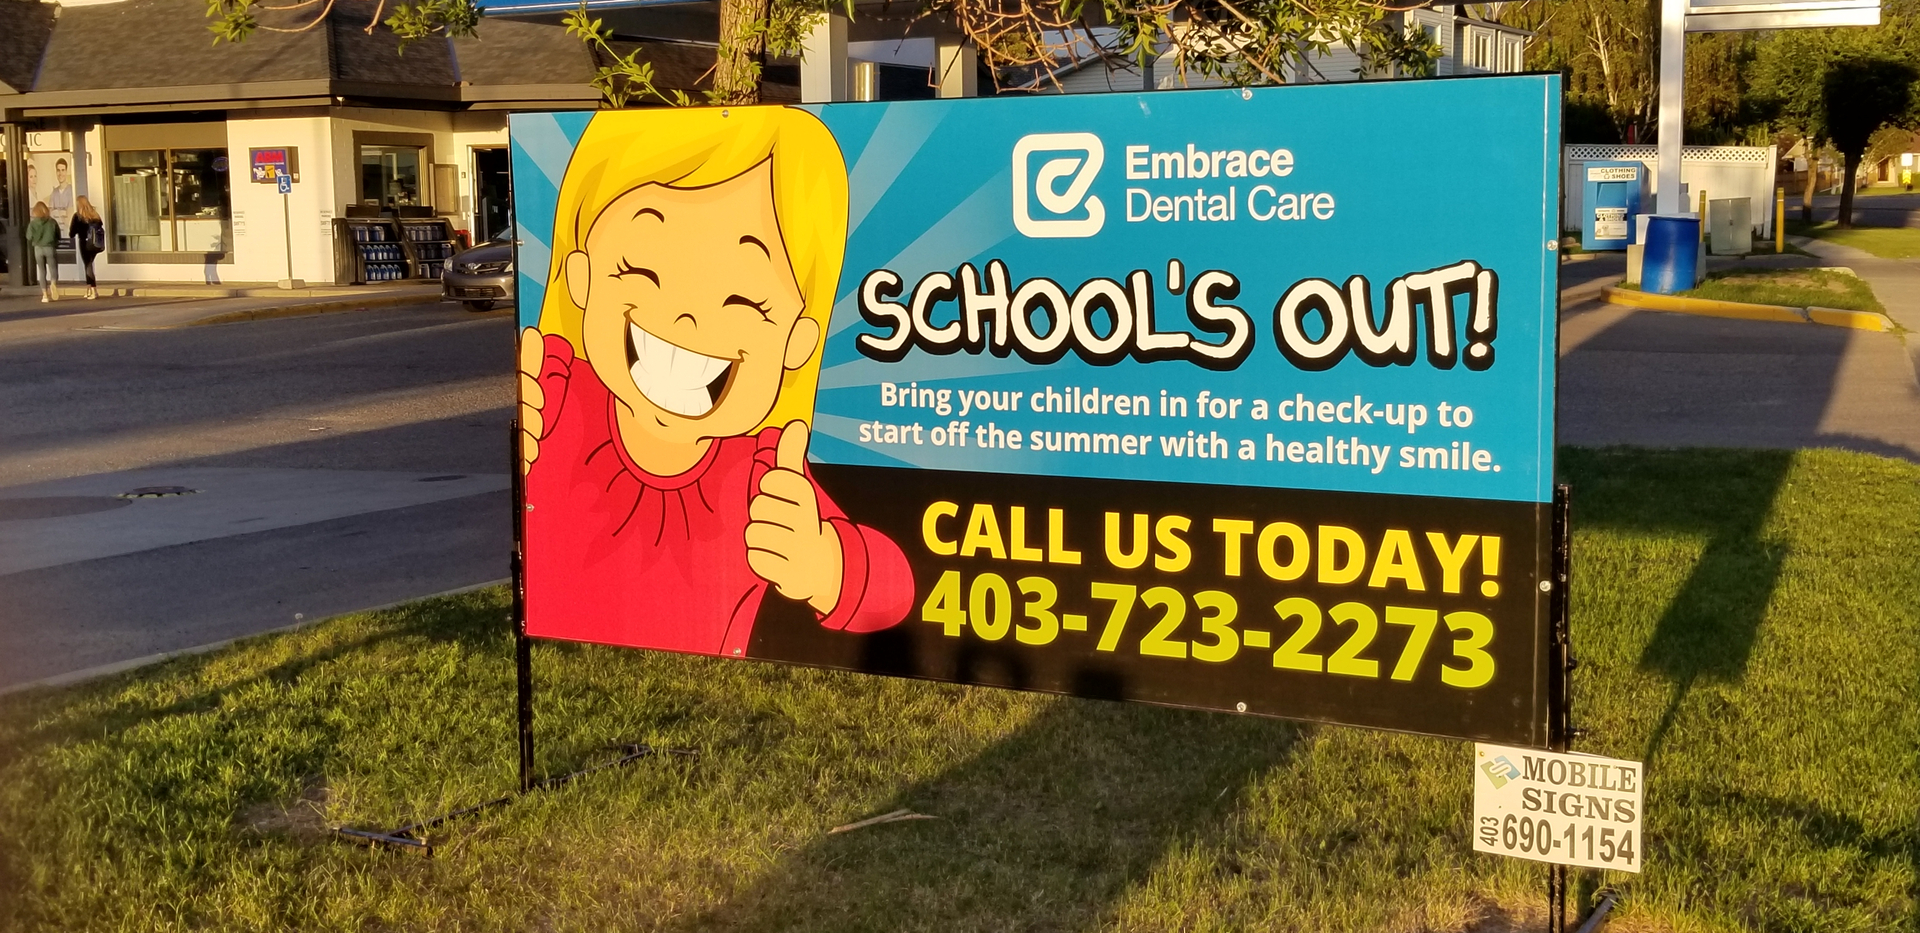 MOBILE SIGNS - Customer Service and Quality